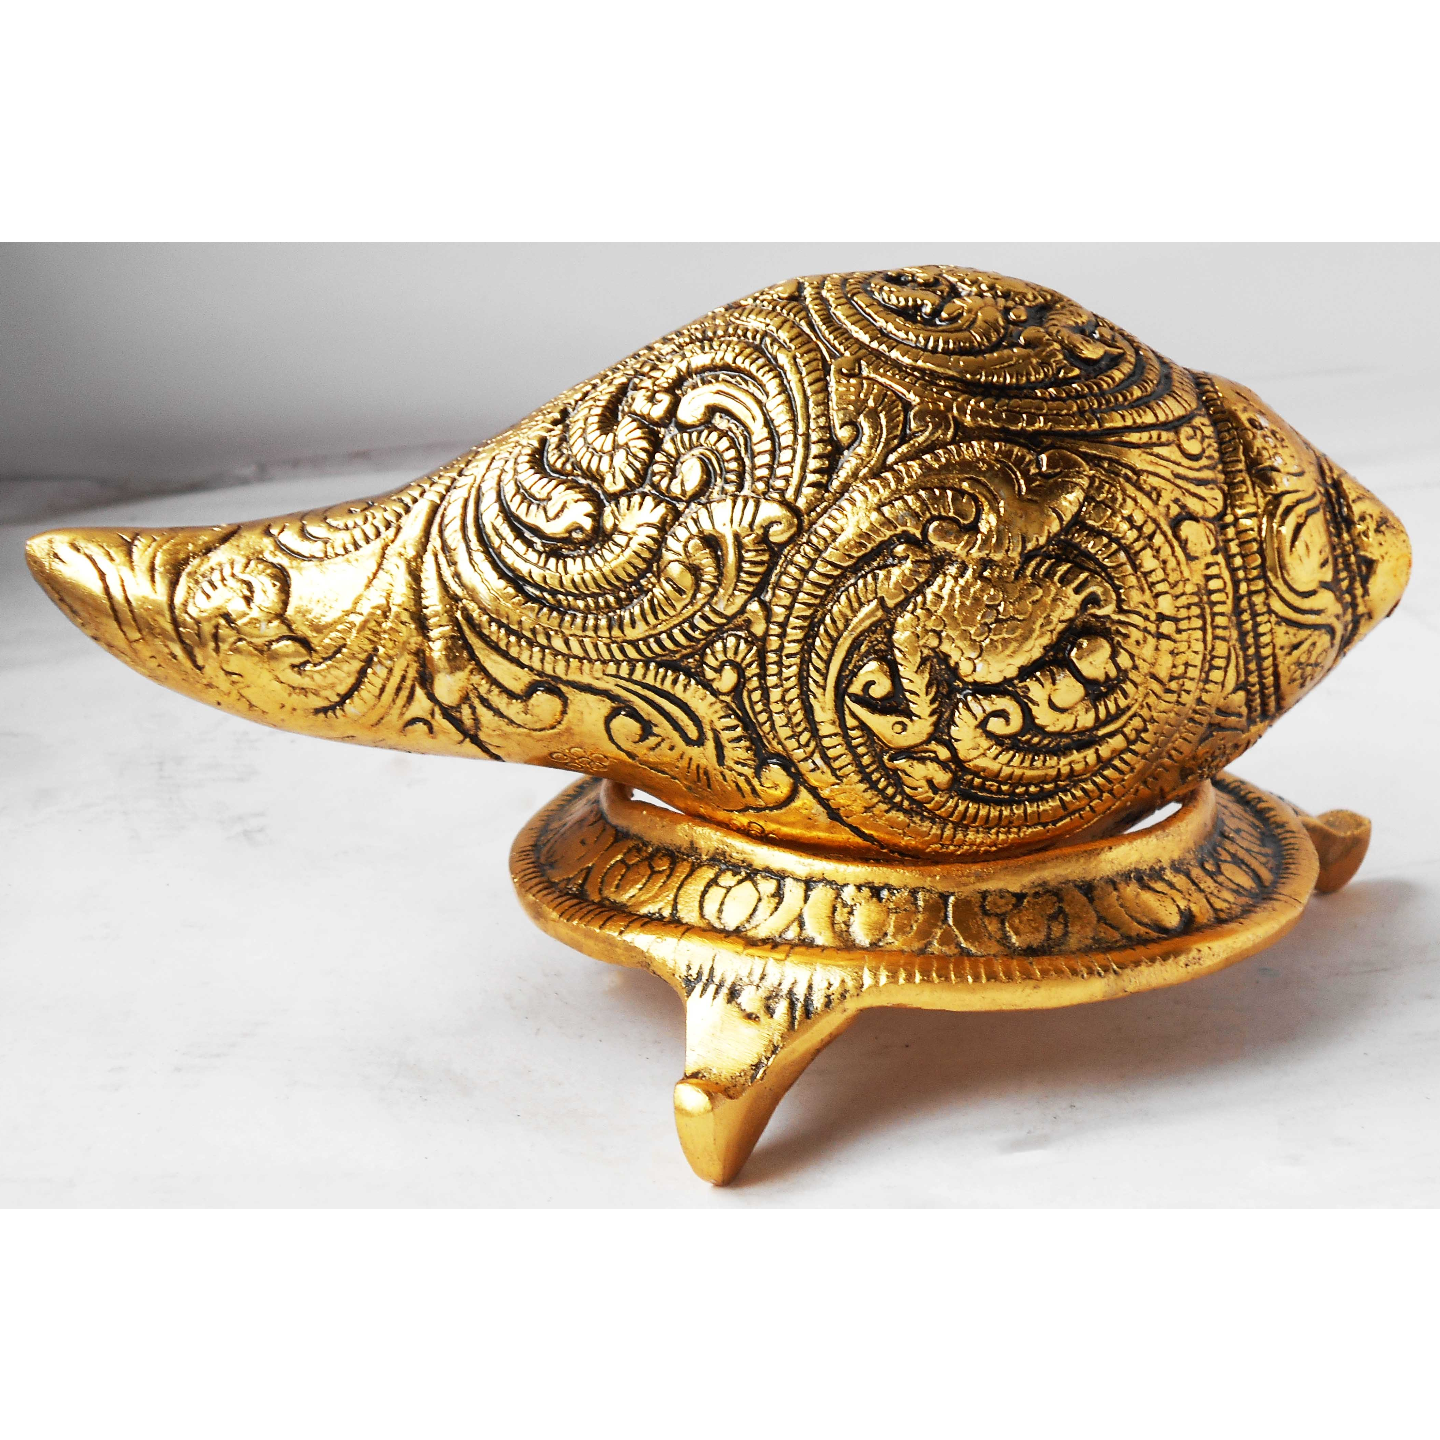 Shank With Stand In Gold Antique- 7.9x4.9x4.1 Inch AS342 G